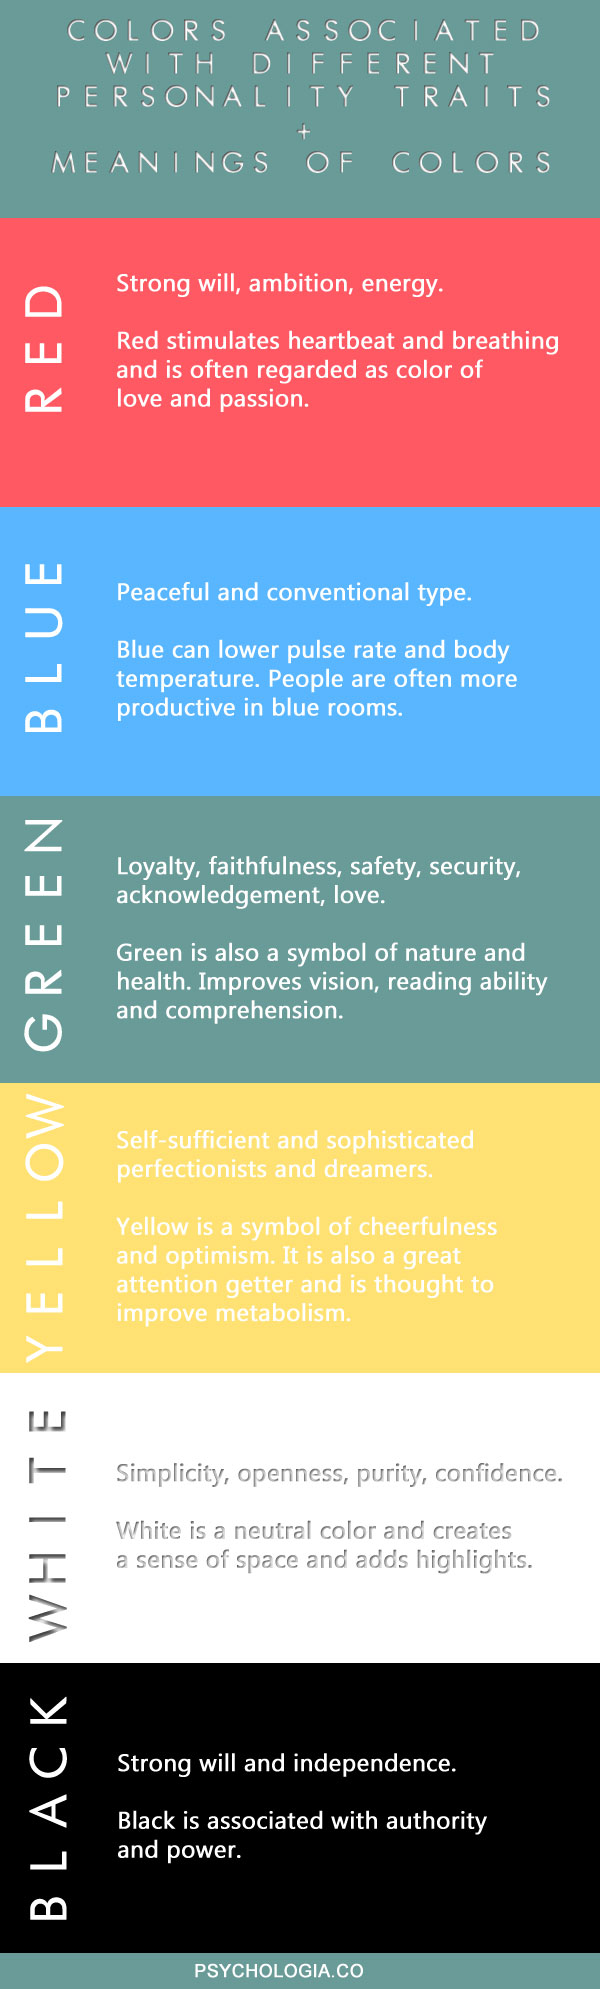 Infographic: Personality Colors and Meaning of Colors